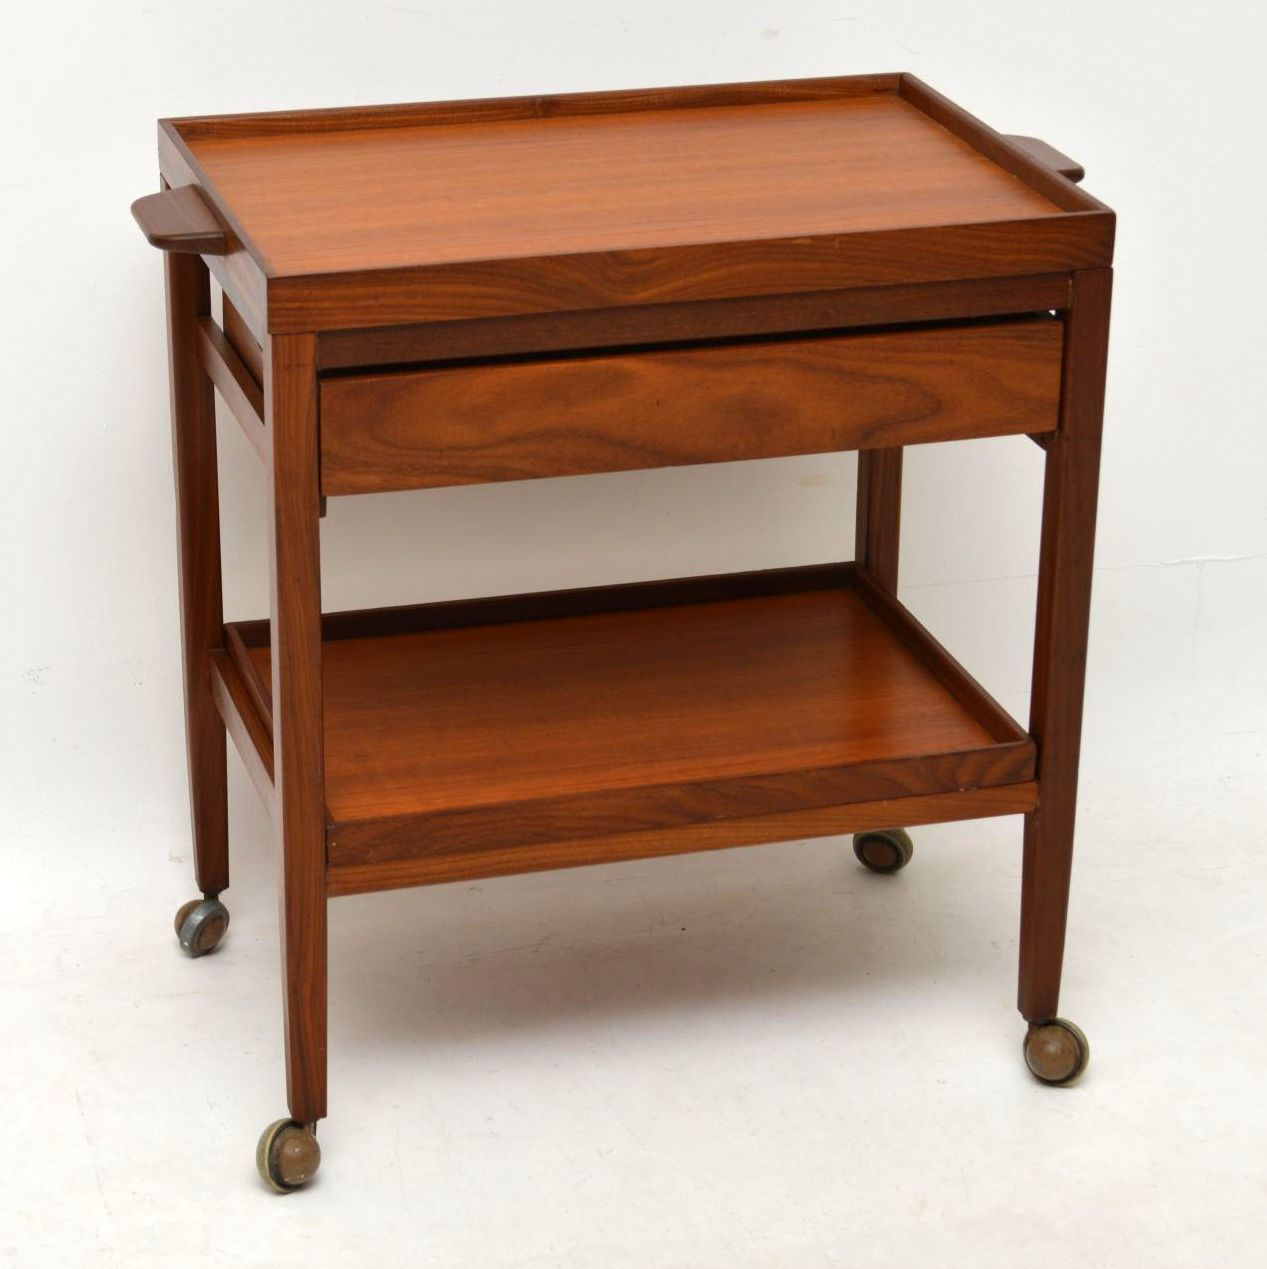 1960's Danish Teak Vintage Drinks Trolley | Retrospective